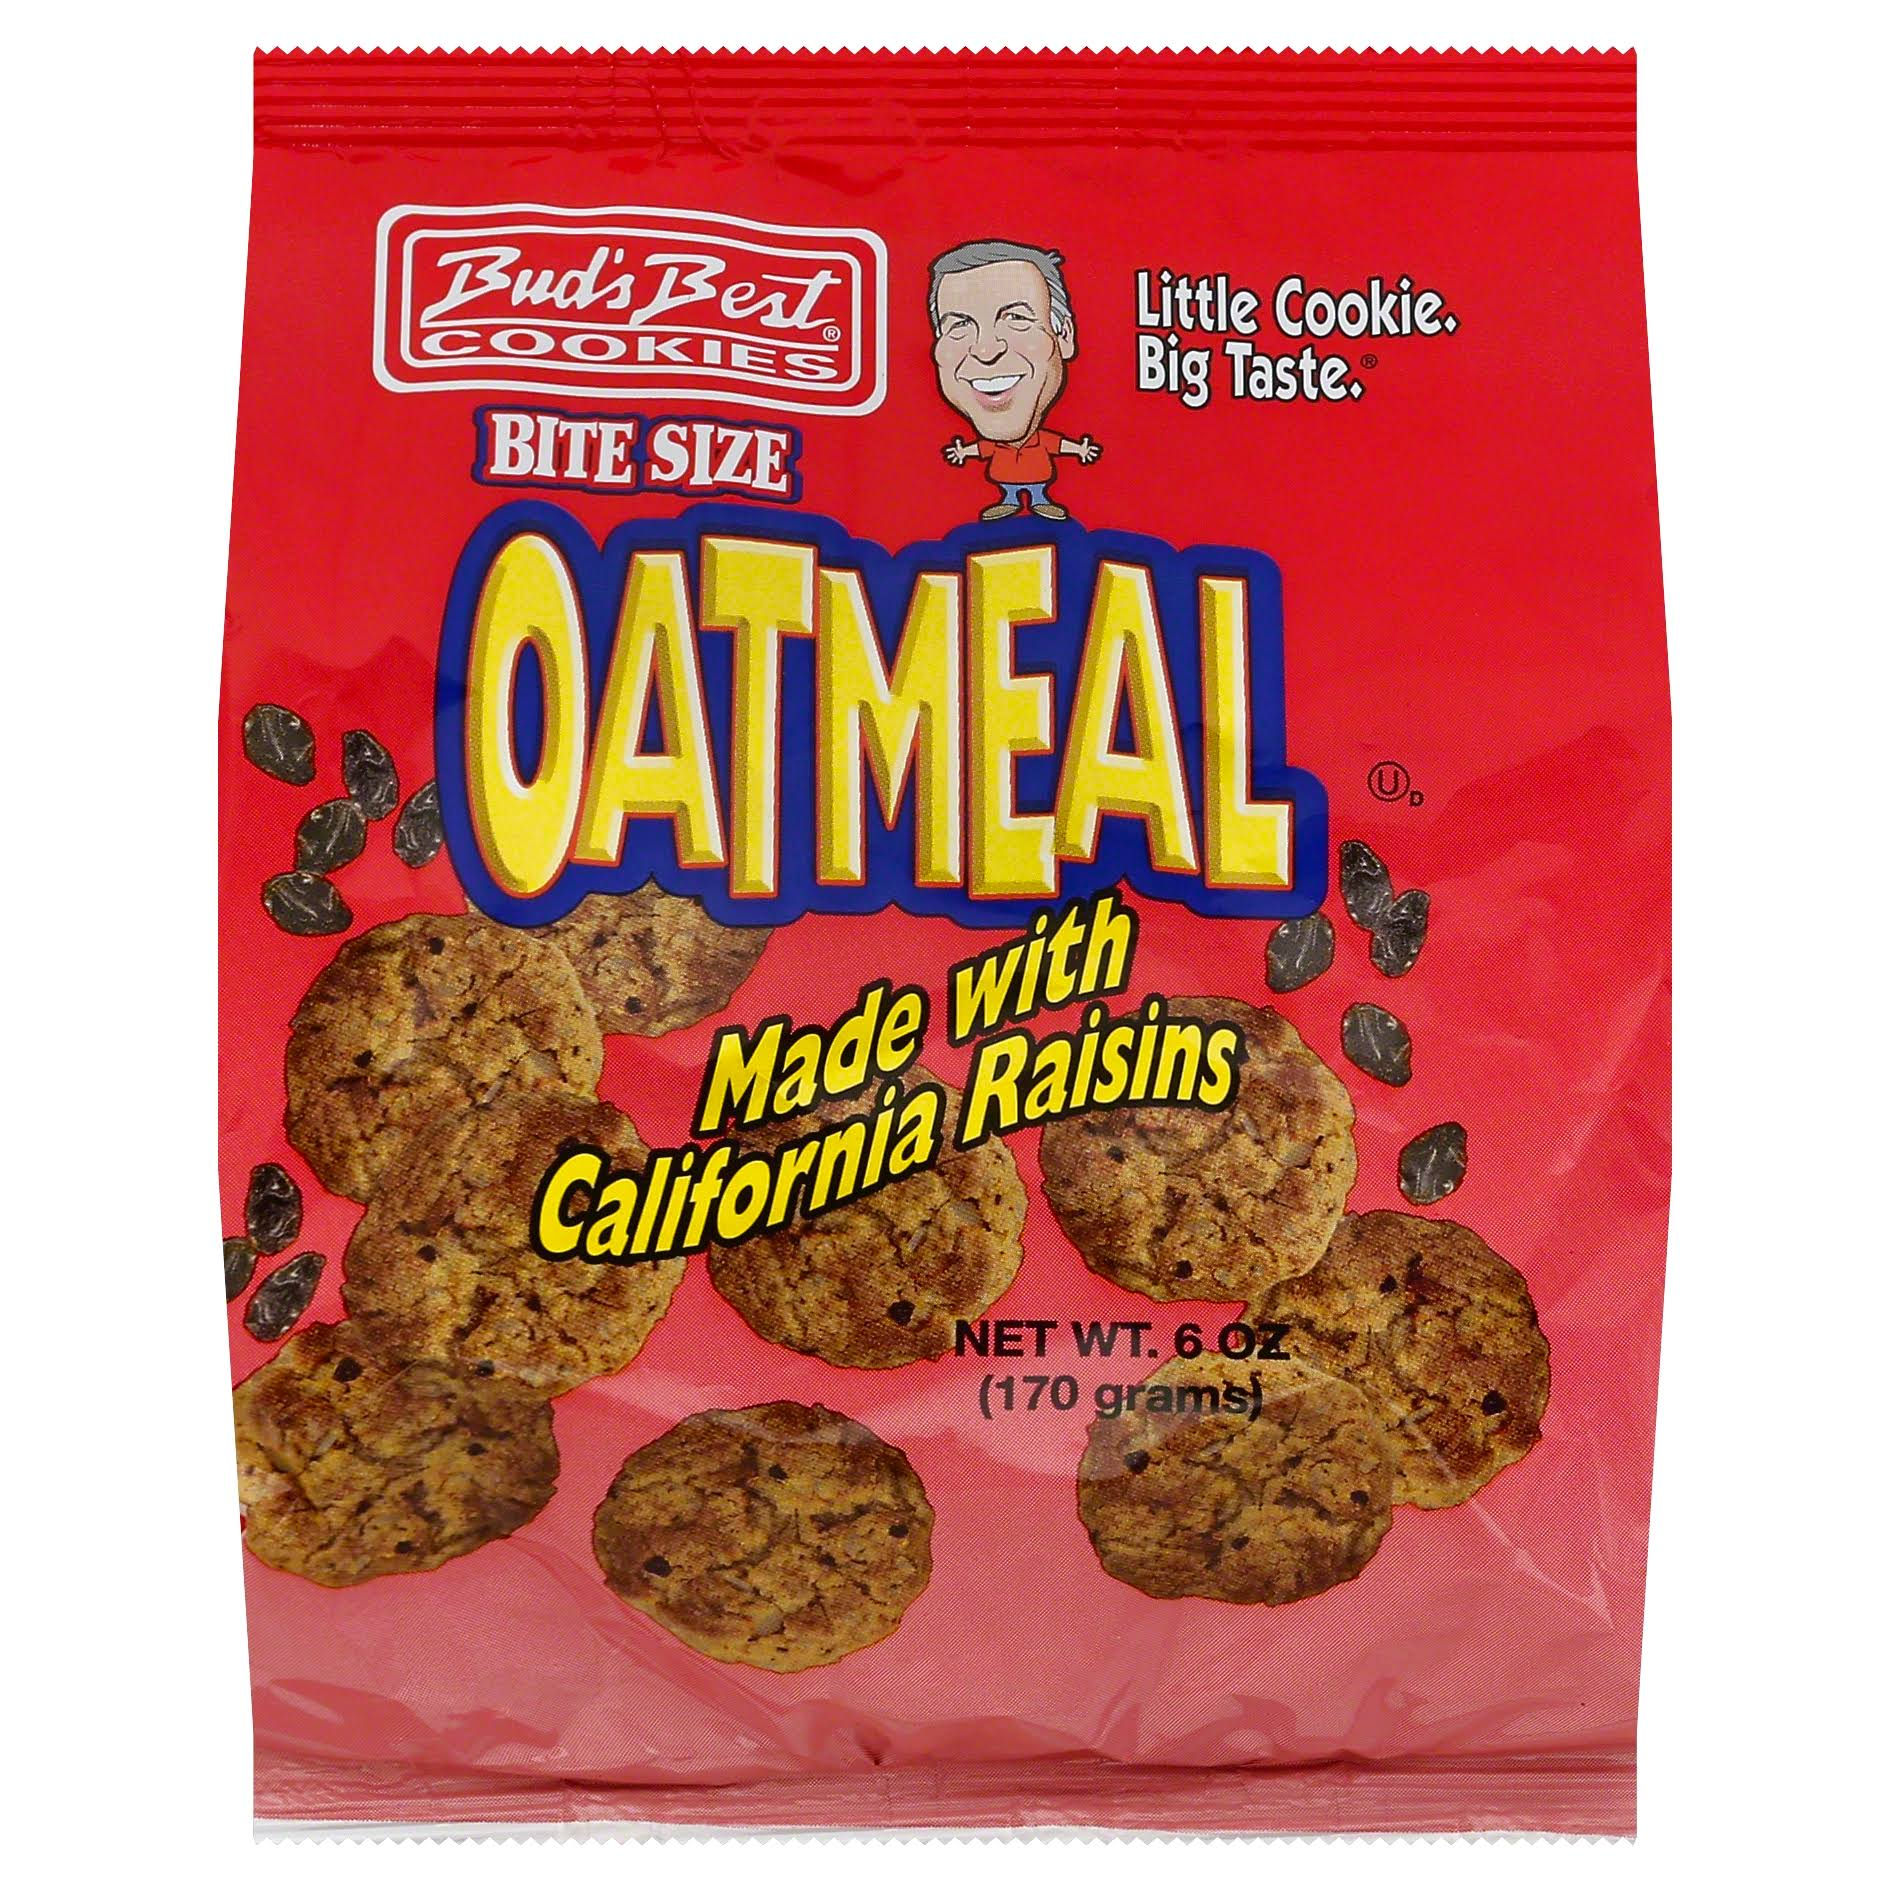 Bud's Best Oatmeal Cookies